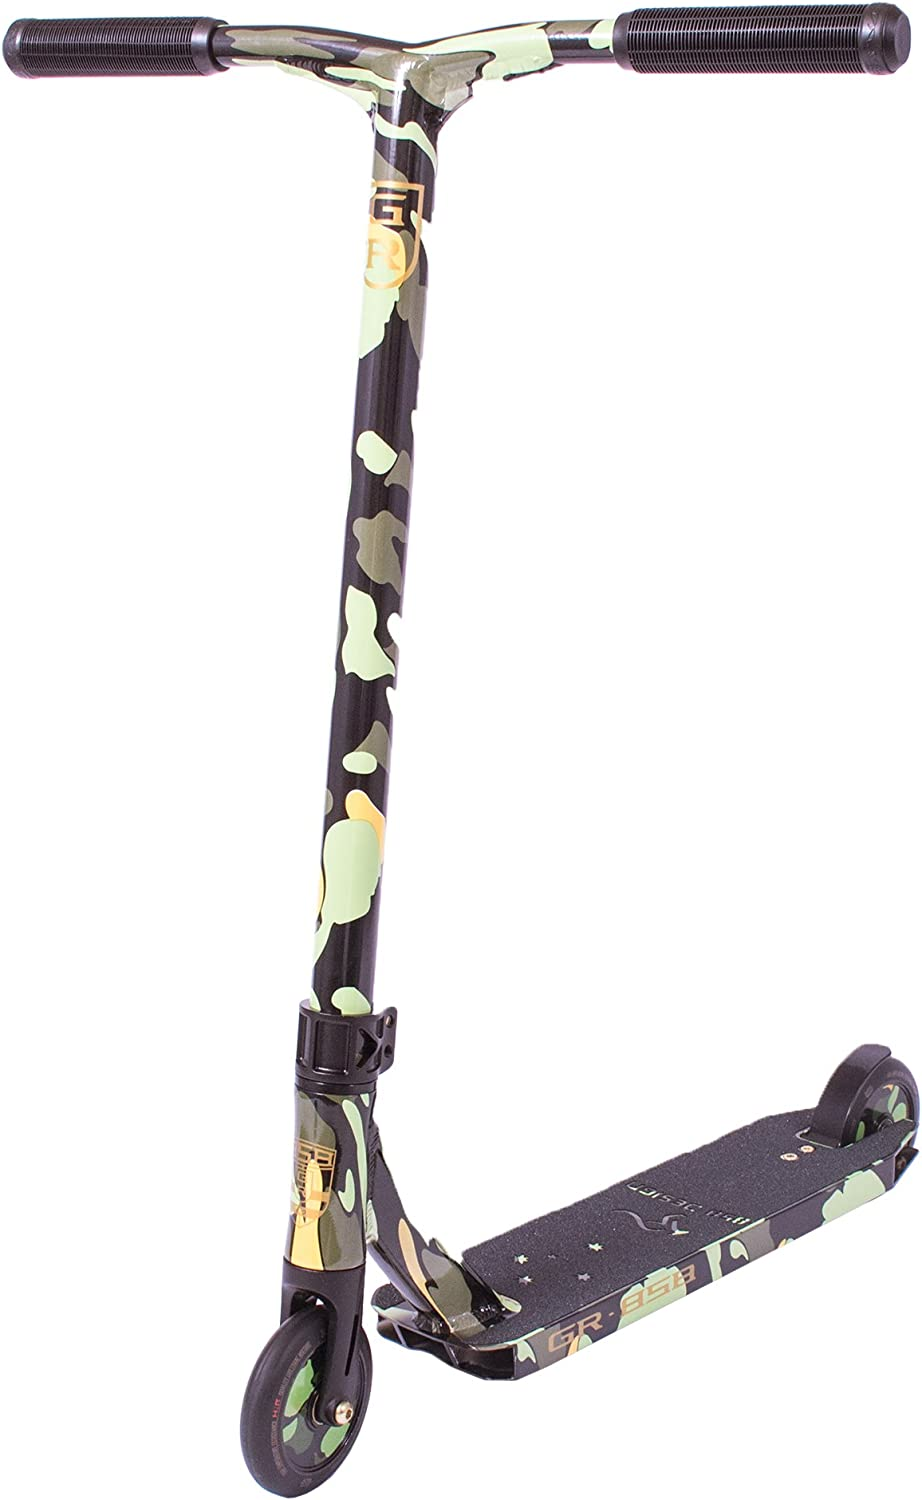 GR Scooter Designed for A Lighter Stronger Ride – Reinforced Alloy Bar, Flat Deck, 110mm Wheels, IHC Fork All Perfect for Riders Starting Out (Camo)